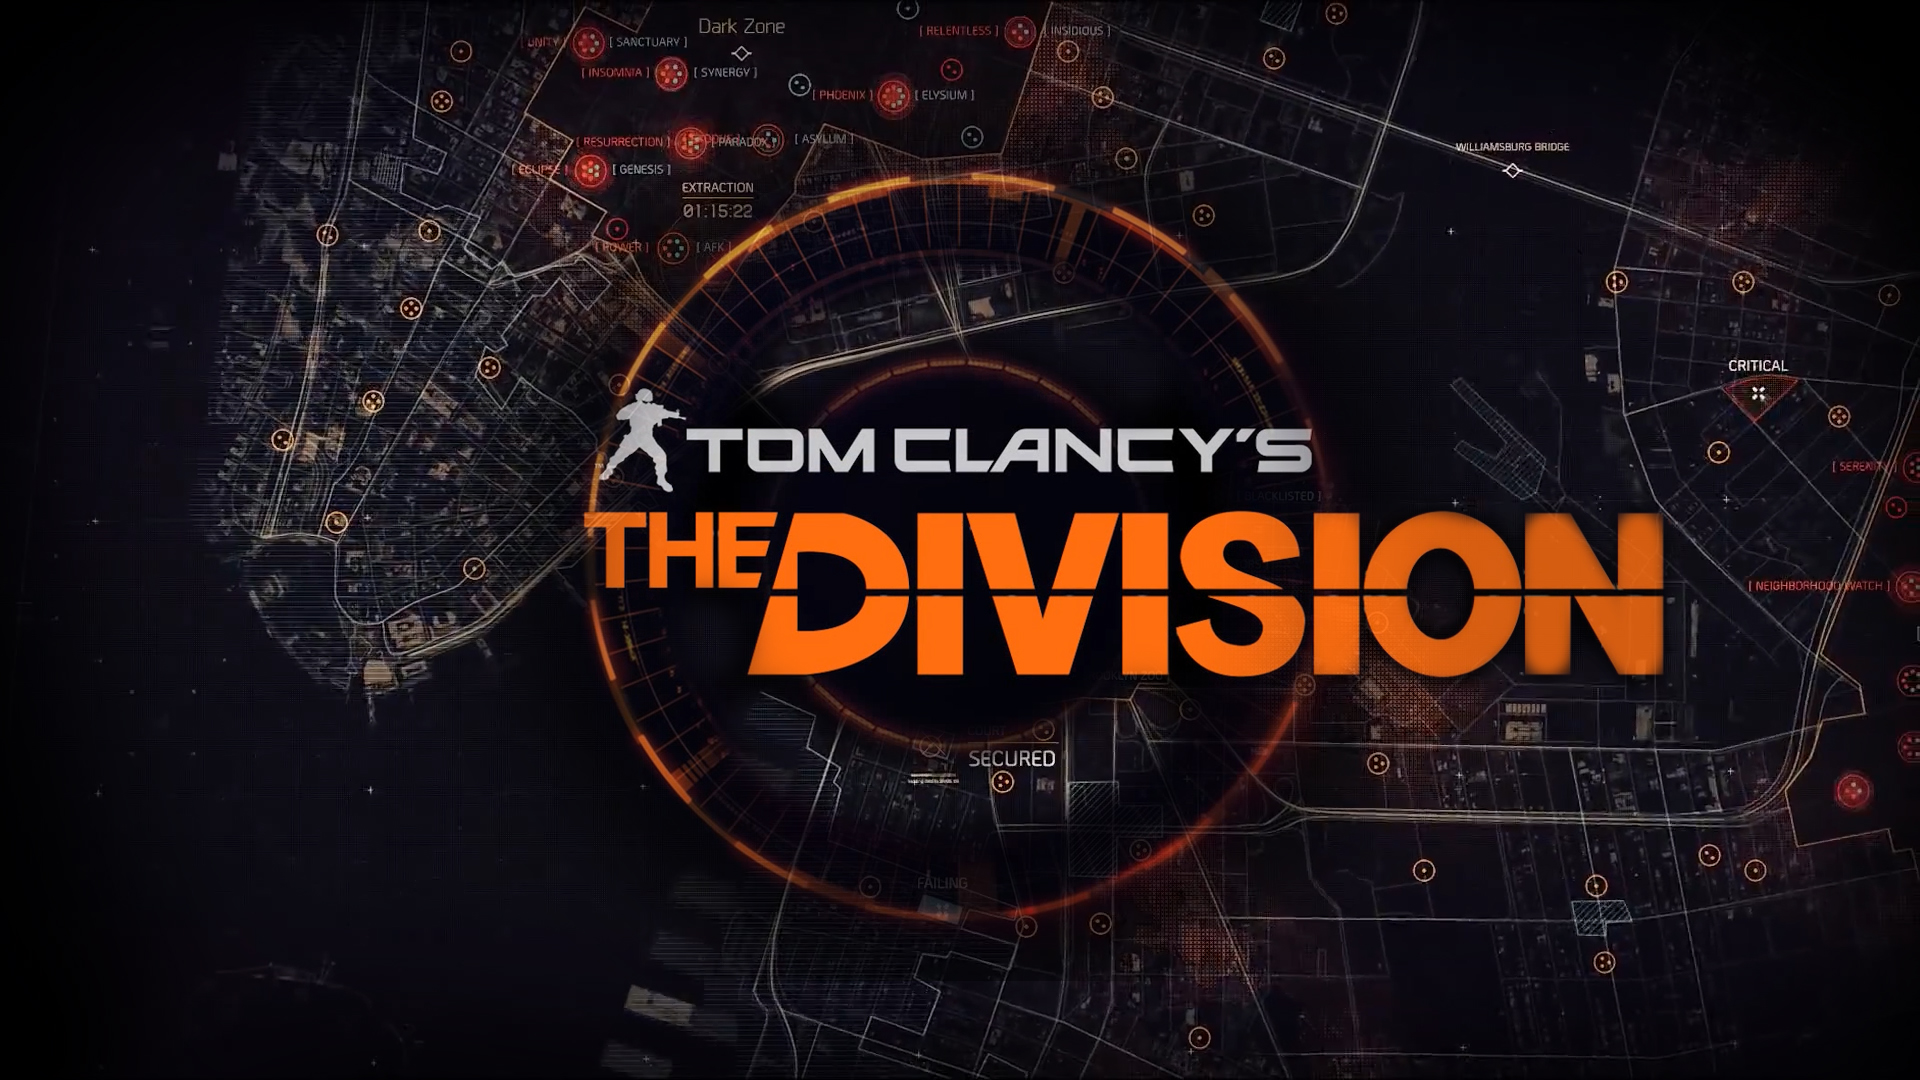 Tom Clancy's the Division for Windows 10 download